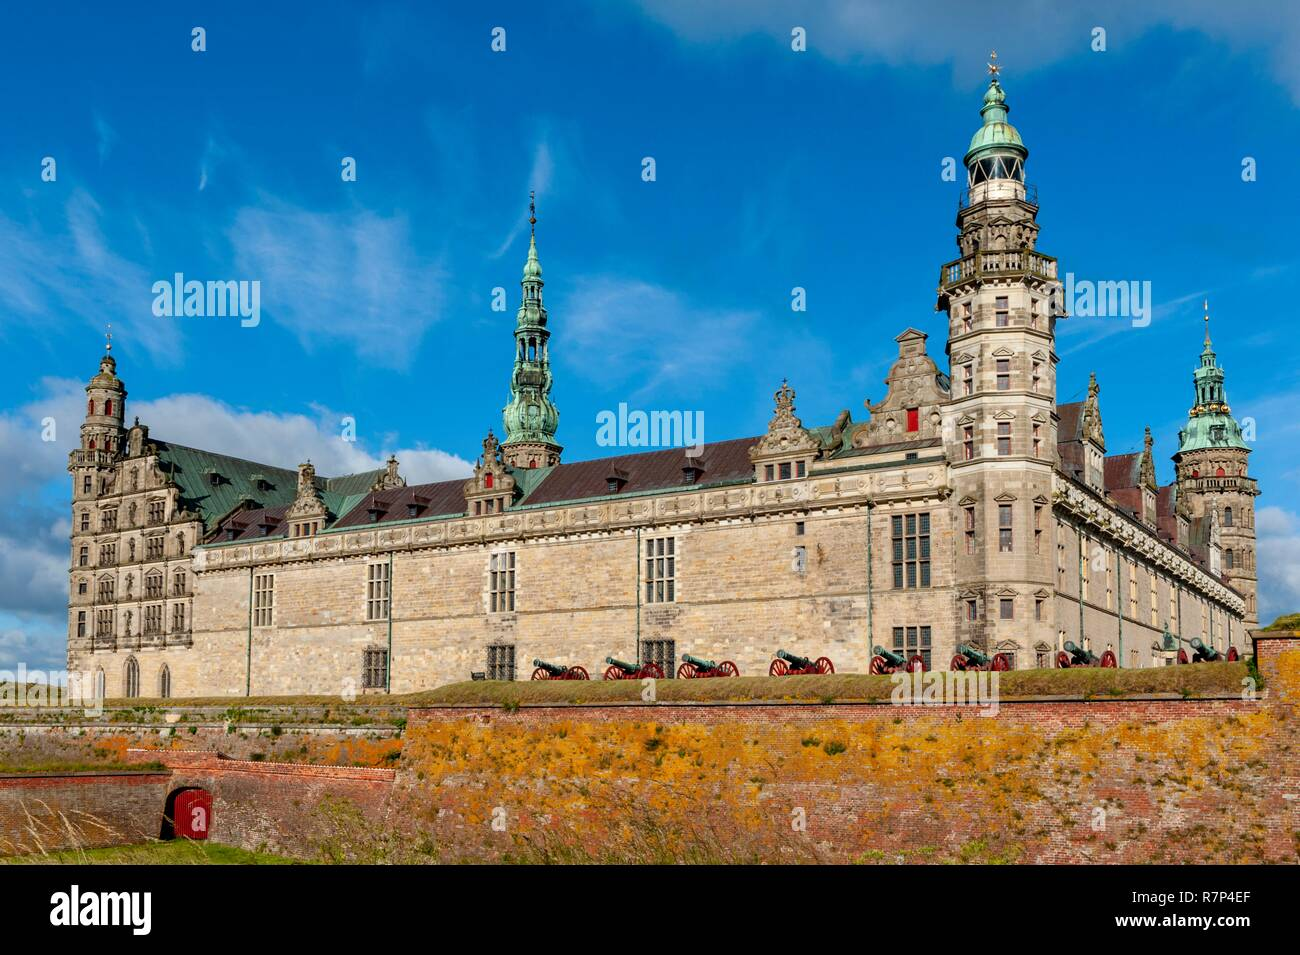 Denmark, Island of Sjaelland, Helsingor, Renaissance castle of Kronborg and its fortifications, classified as World Heritage by UNESCO, Shakespeare's Hamlet setting - Stock Image